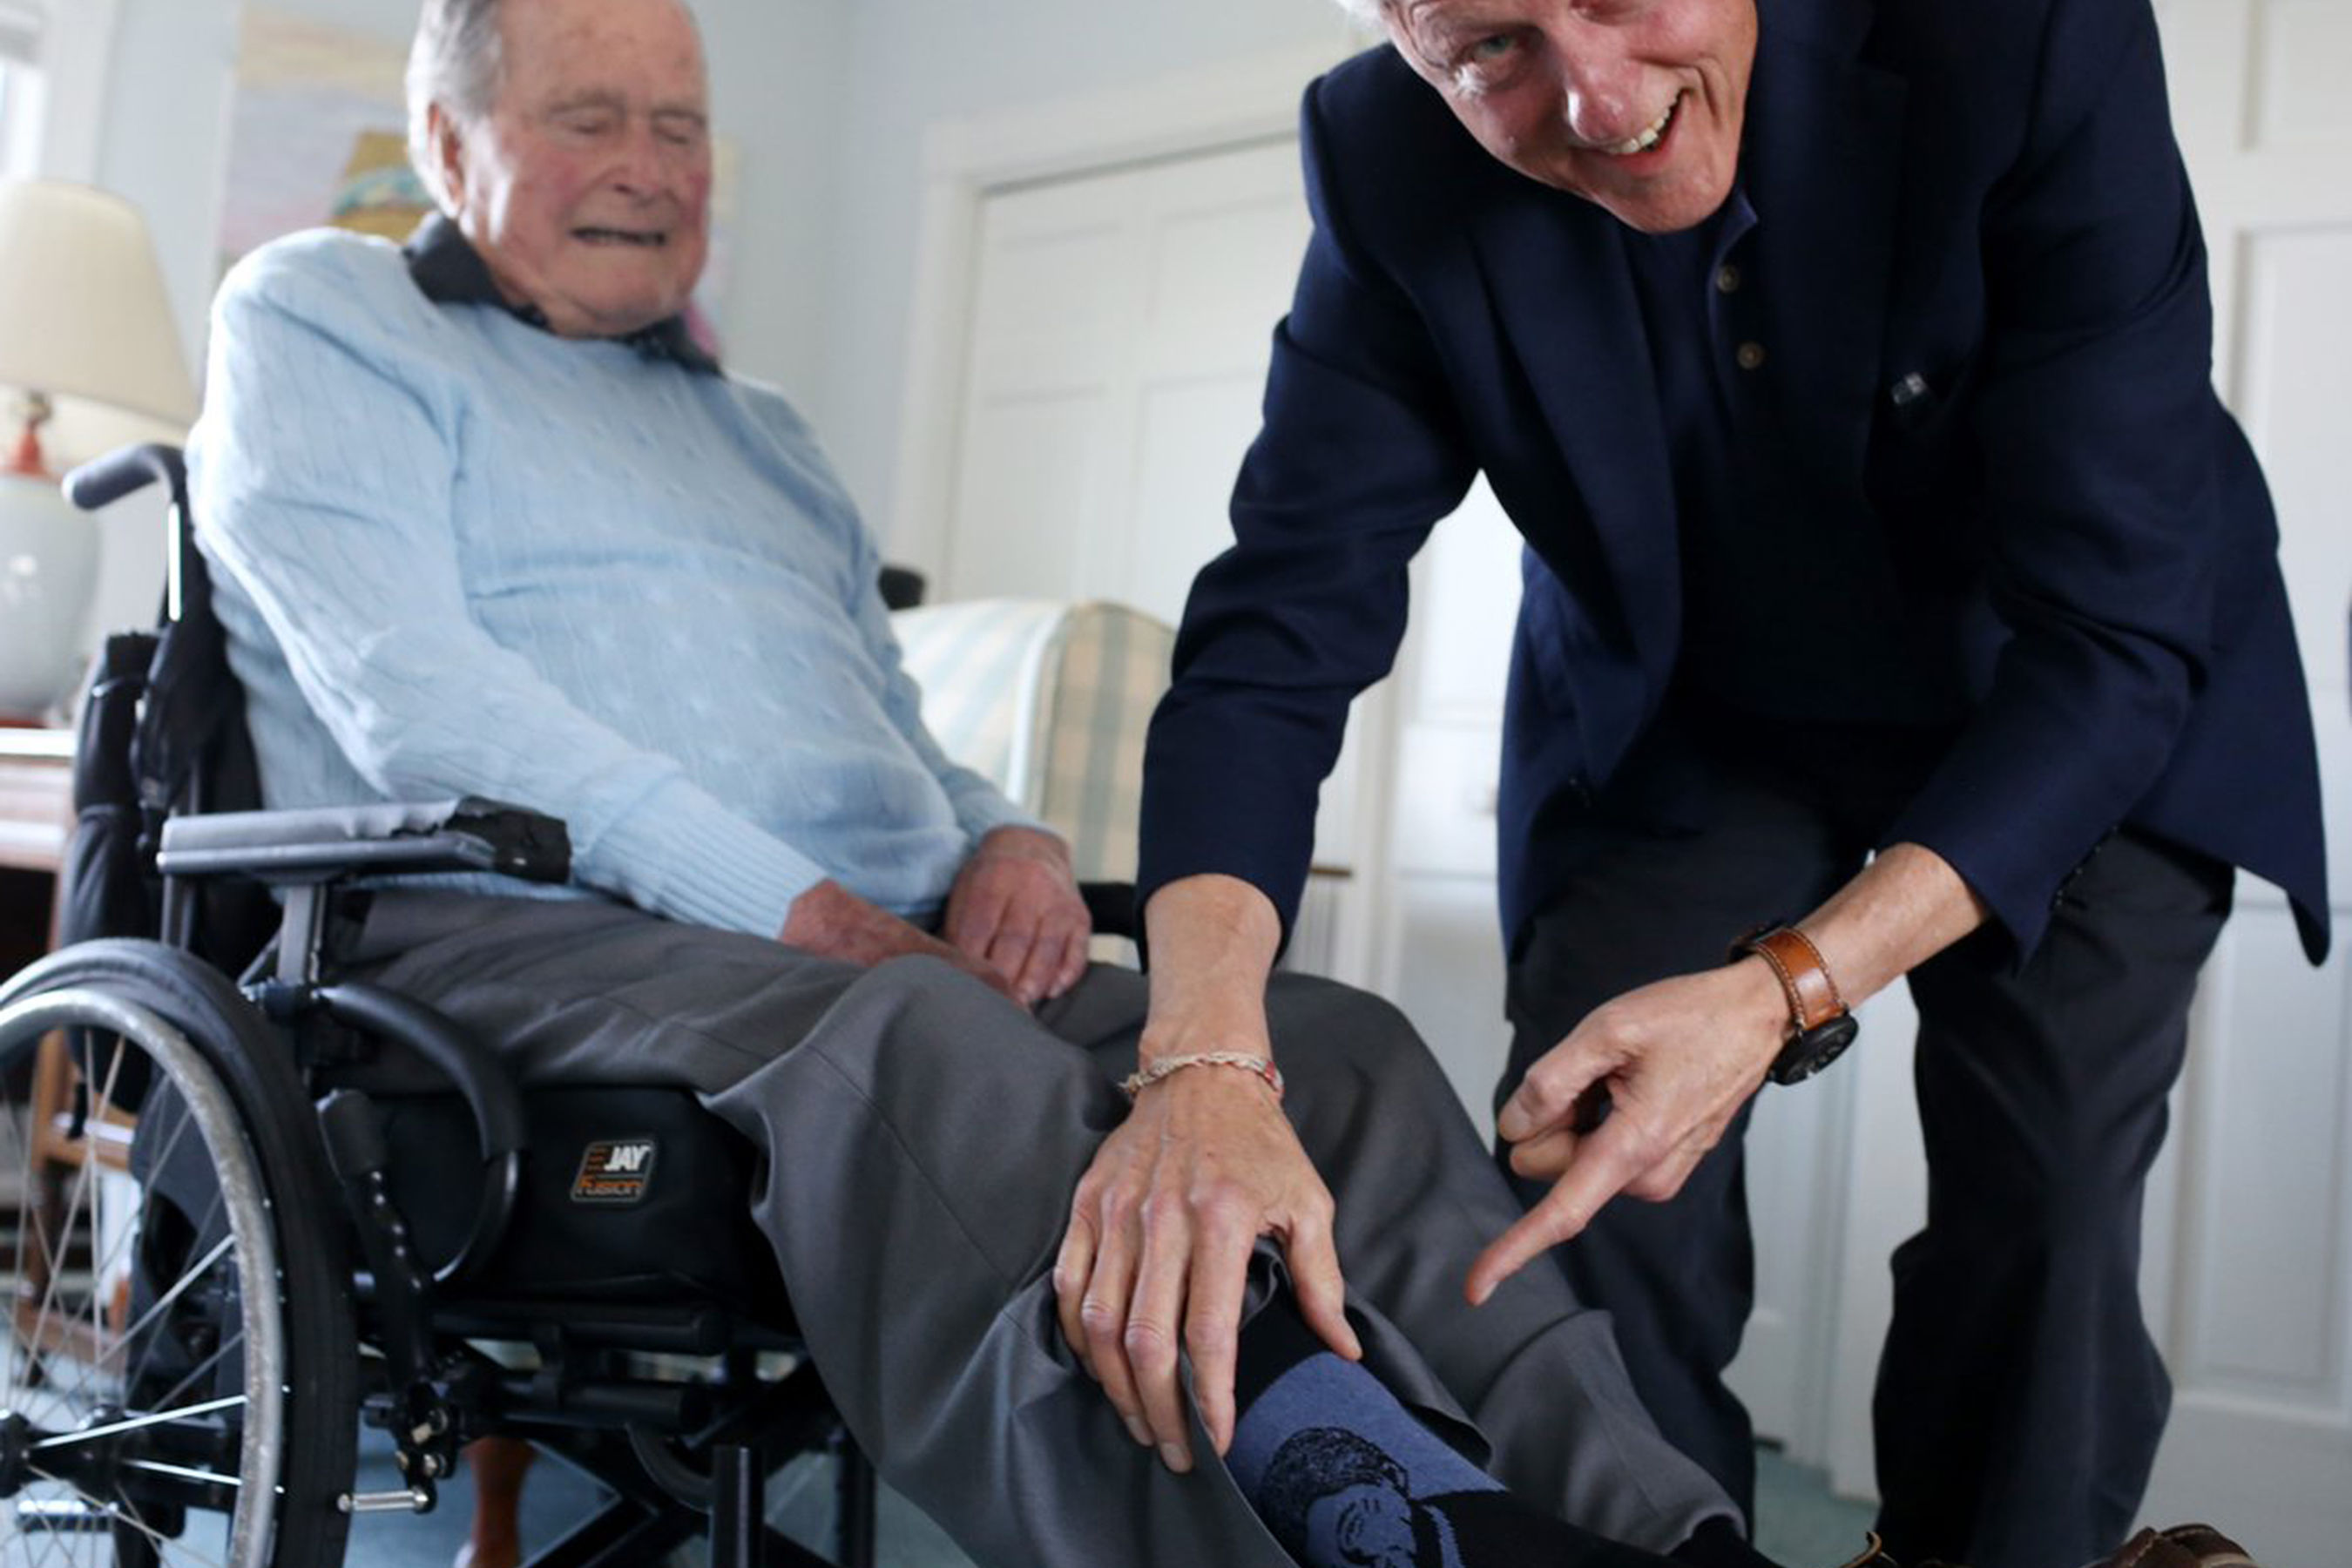 Americans Remember George H.W. Bush with Touching #SocksForBush Social Media Campaign